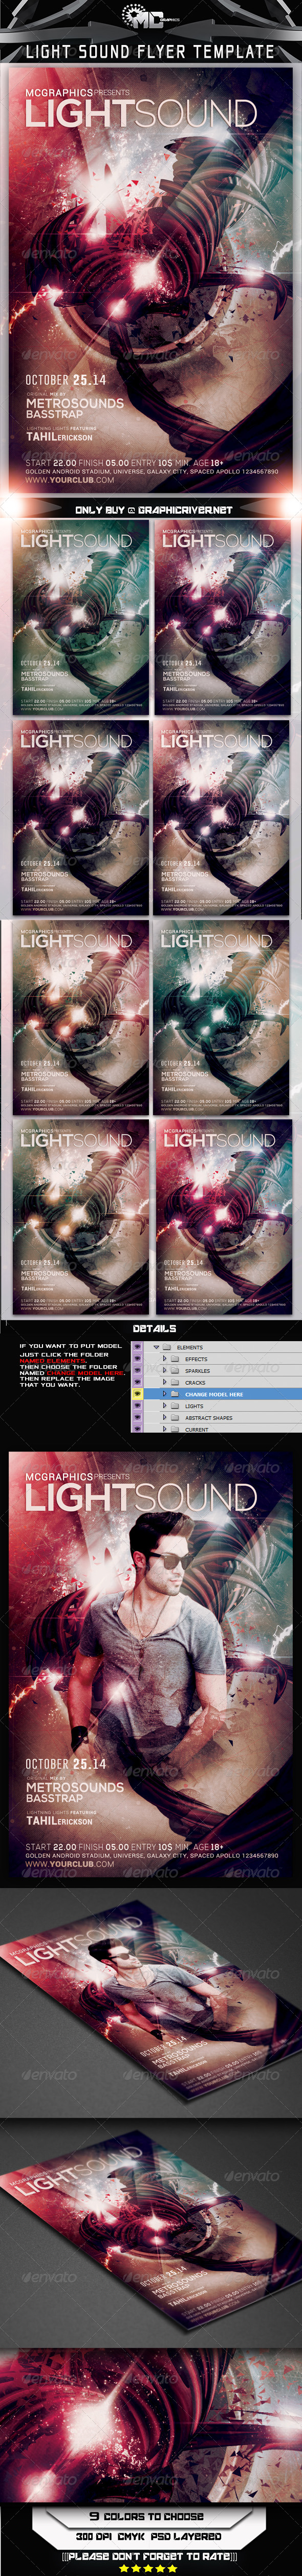 GraphicRiver Light Sound Flyer Template 7910601